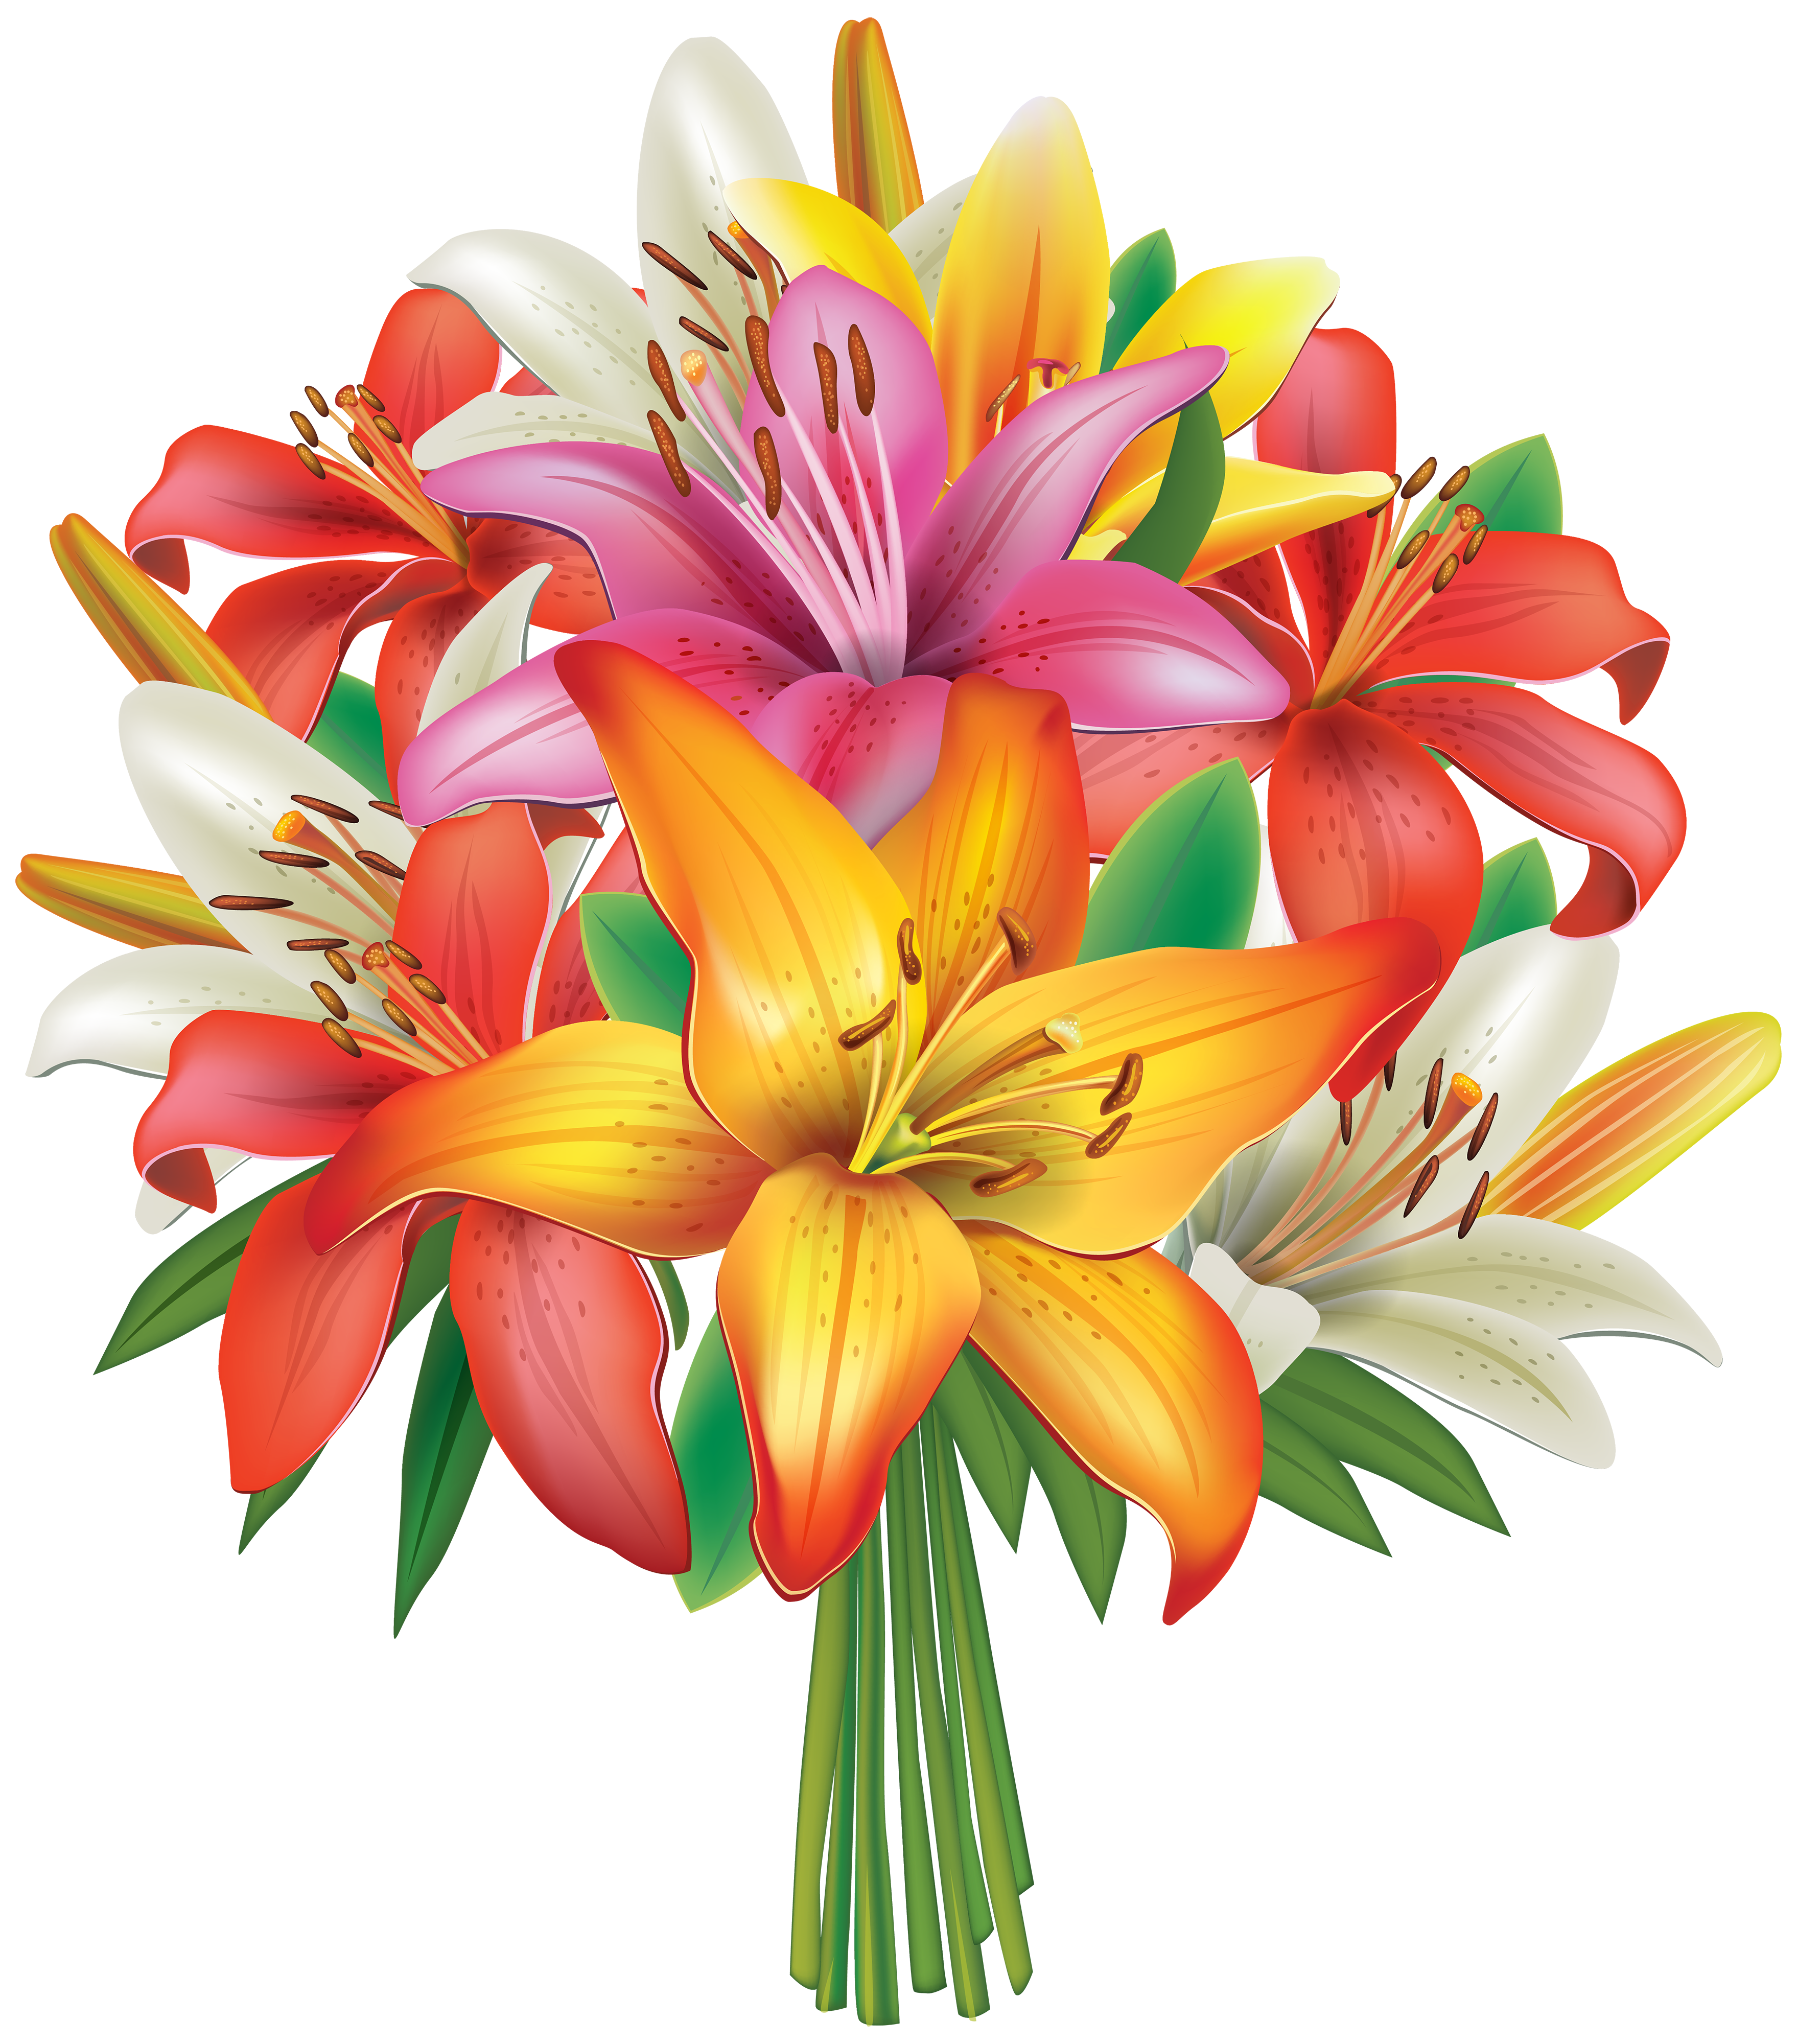 clipart free library Lilies flowers png image. Bouquet clipart flower bucket.